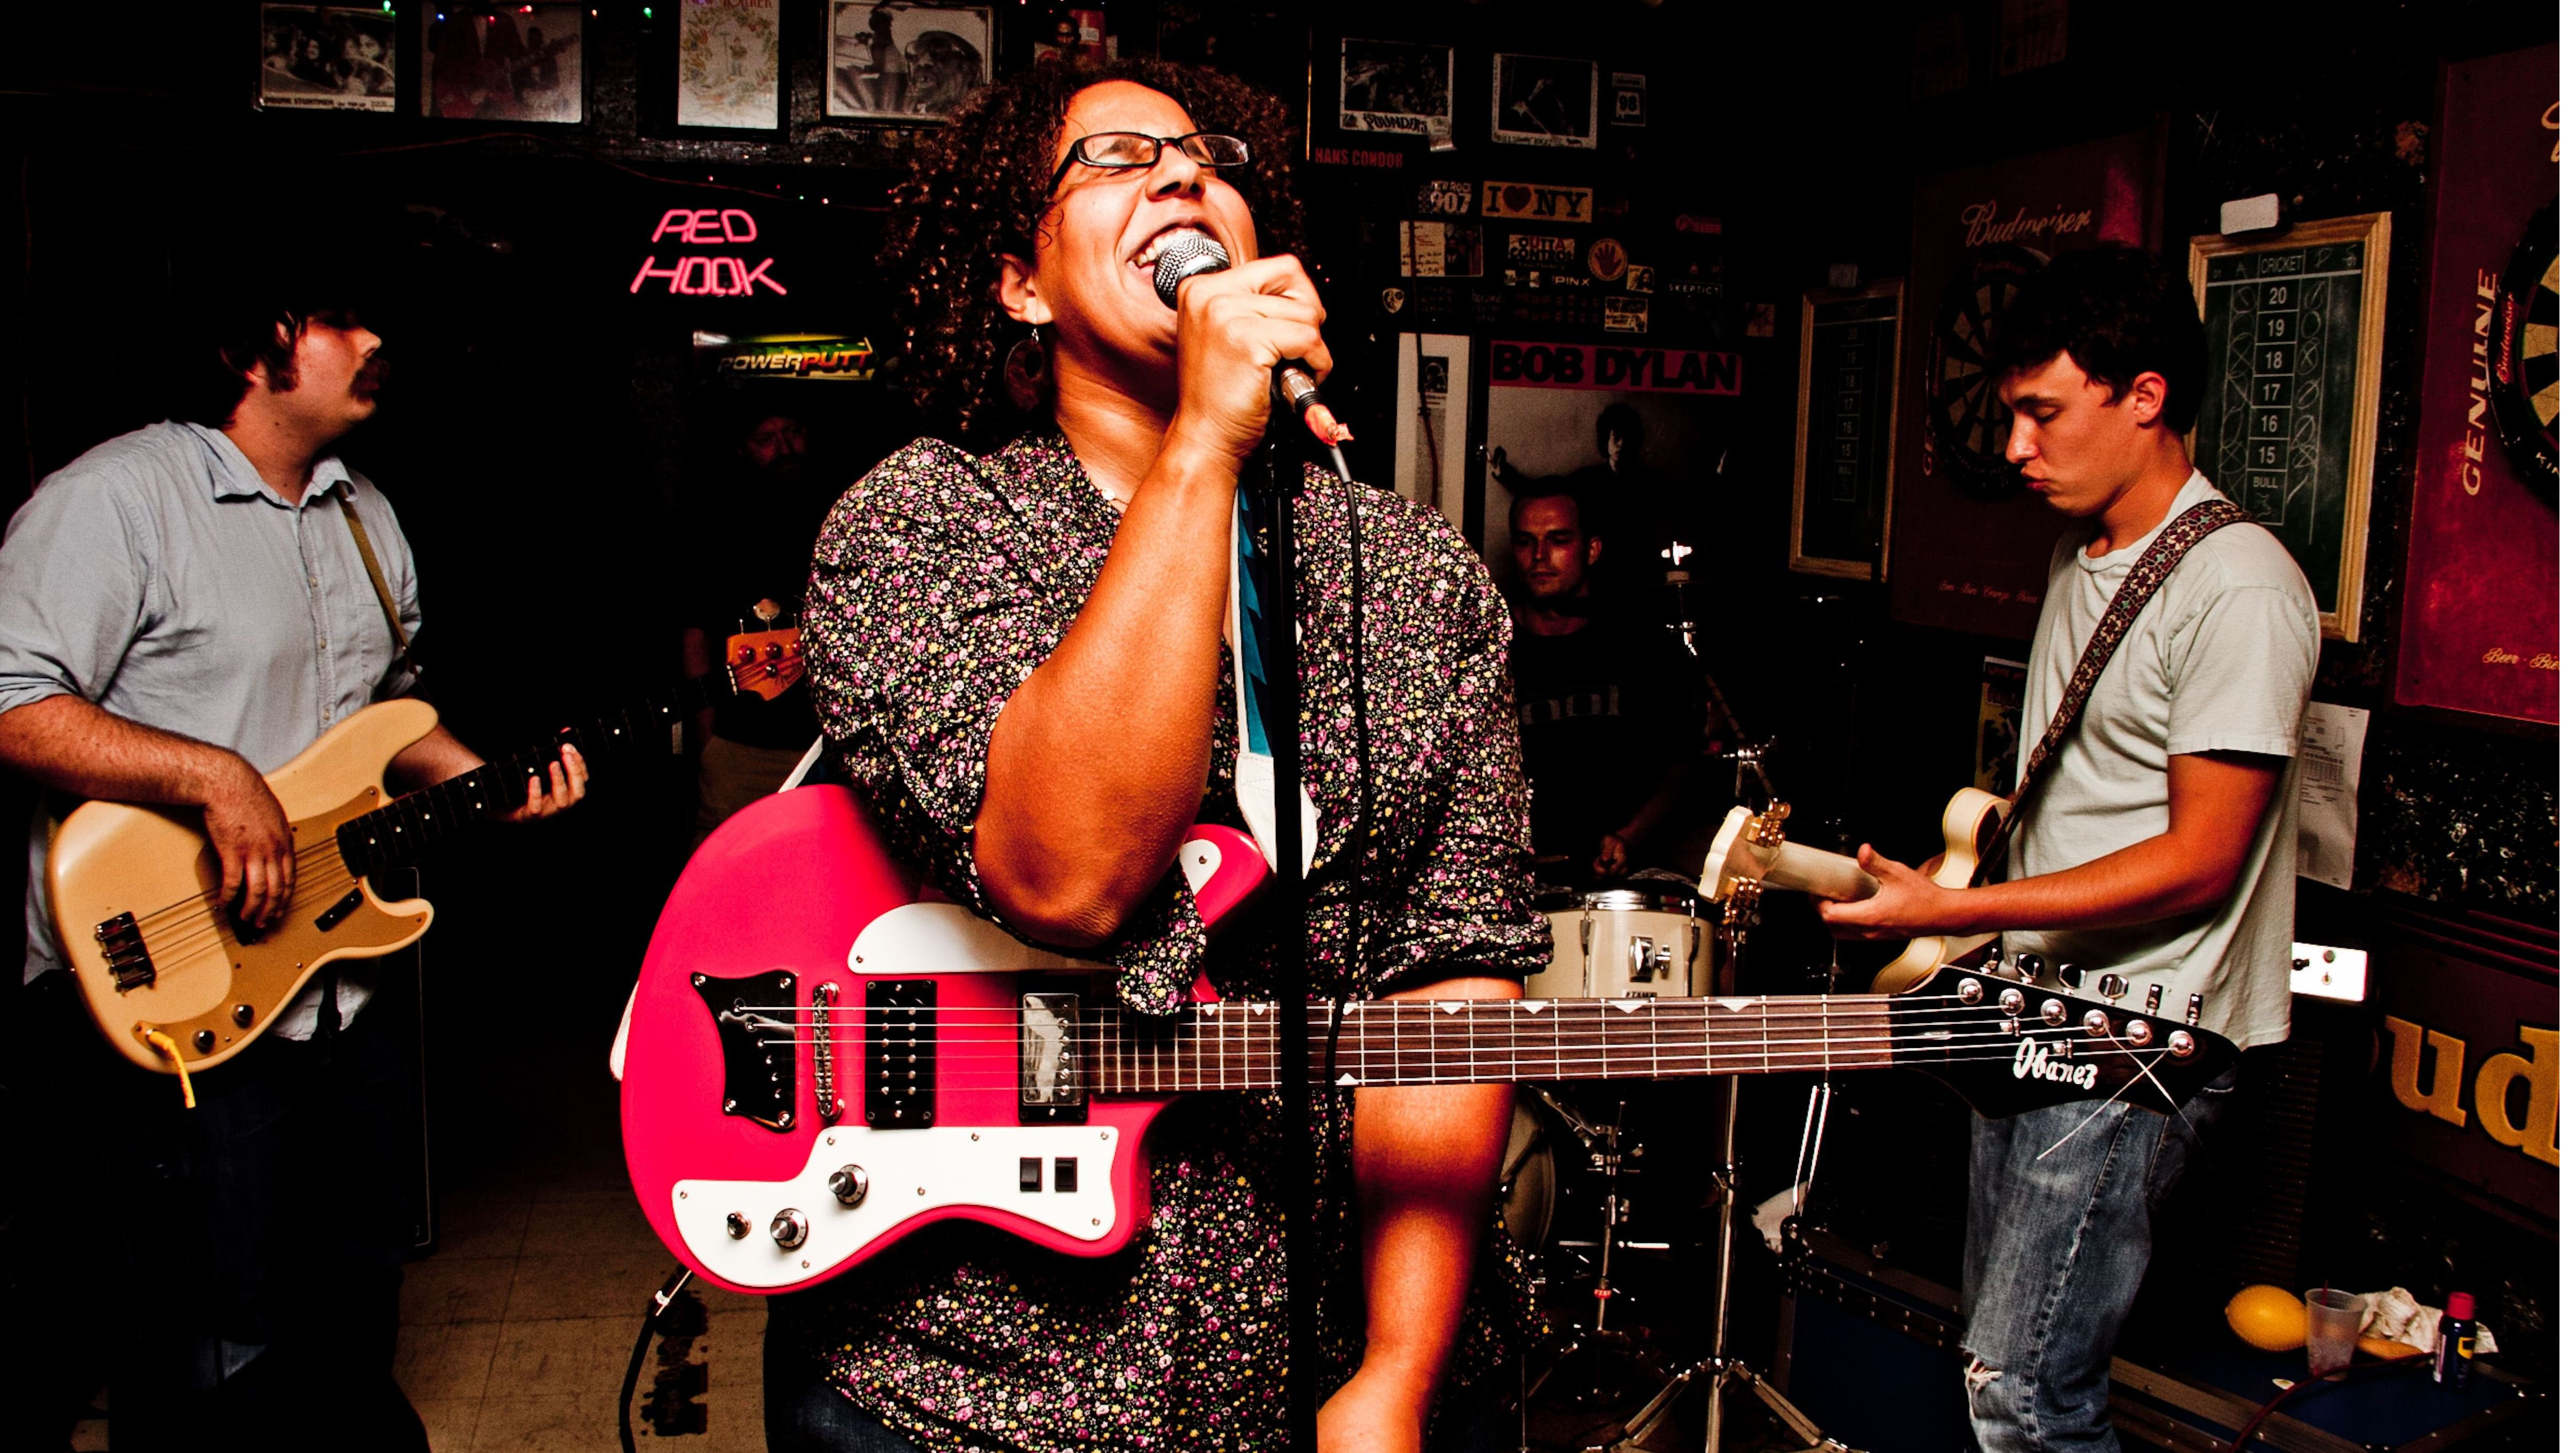 Sound of the South: Alabama Shakes drummer Steve Johnson says he and his band (front, from left: Zac Cockrell, Brittany Howard and Heath Fogg) have been taken aback by the sudden praise they've received from high-profile musicians.  DAVID A. | SMITH